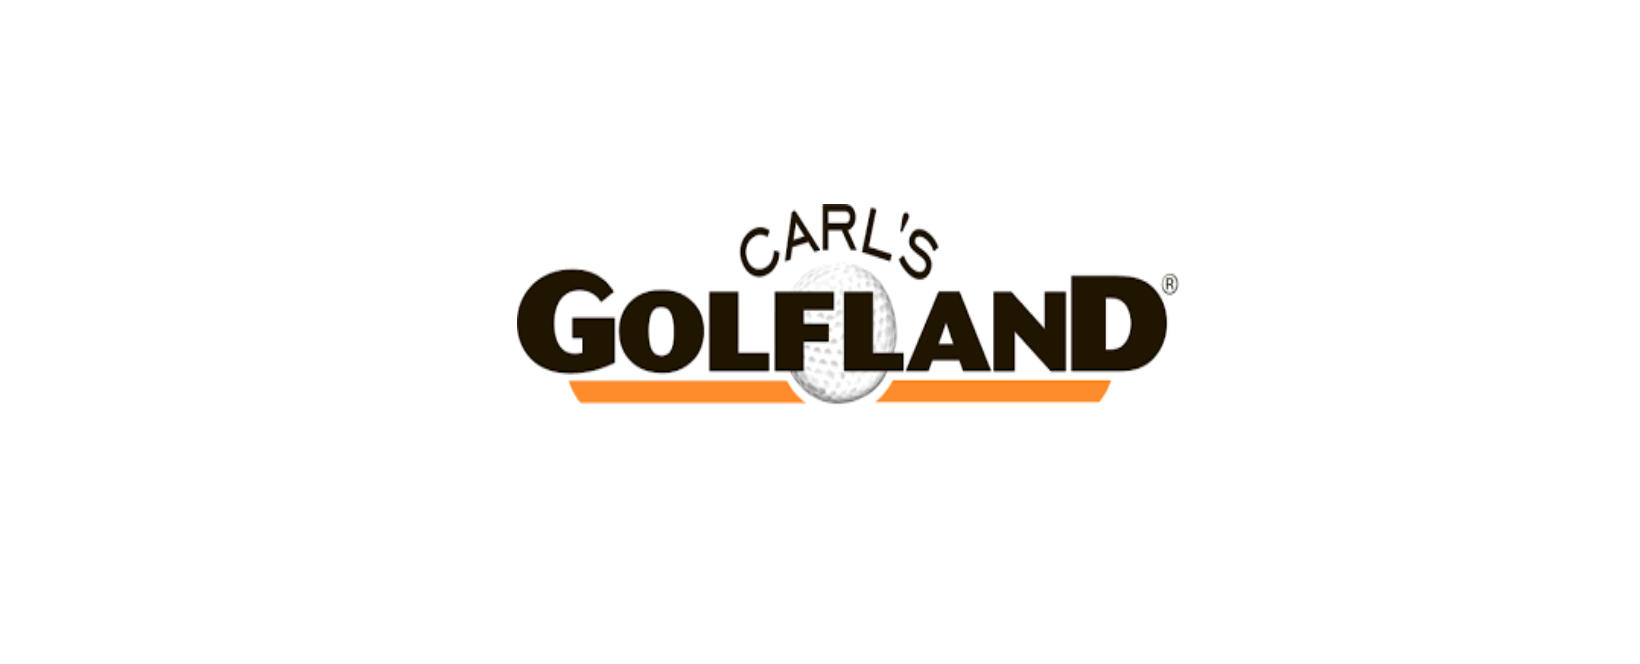 Carl's Golfland Discount Code 2021